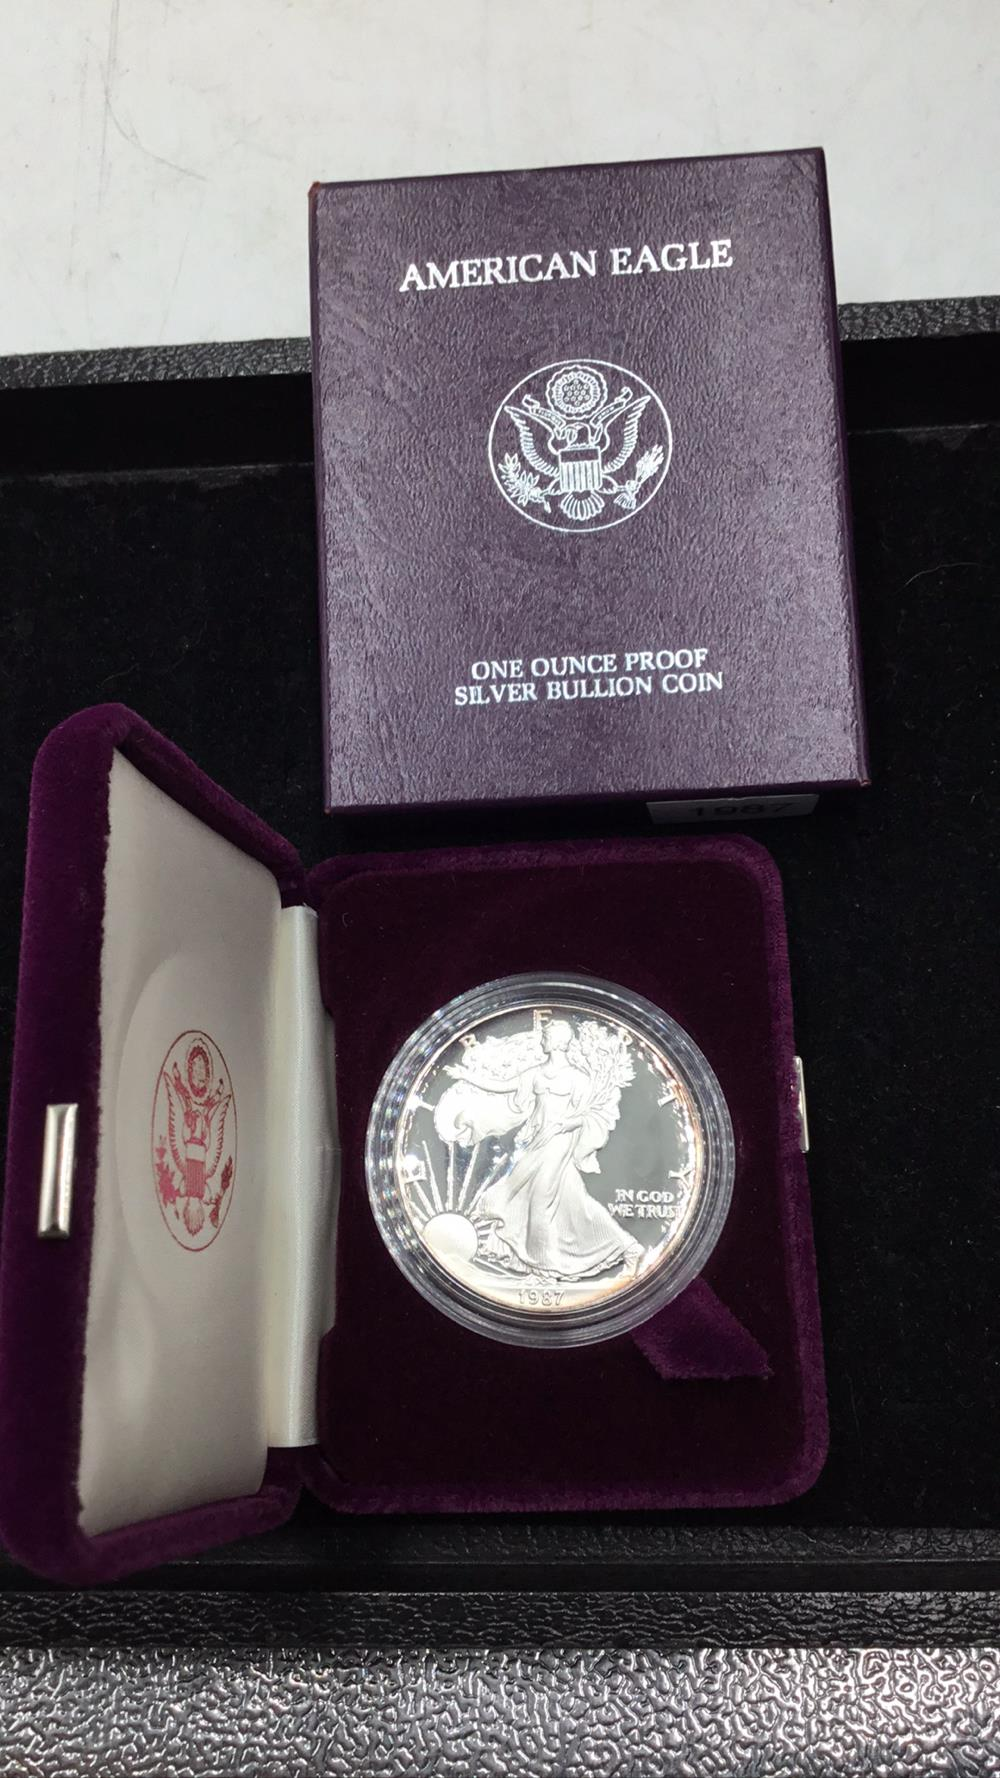 American eagle 1 ounce proof silver bullion coin